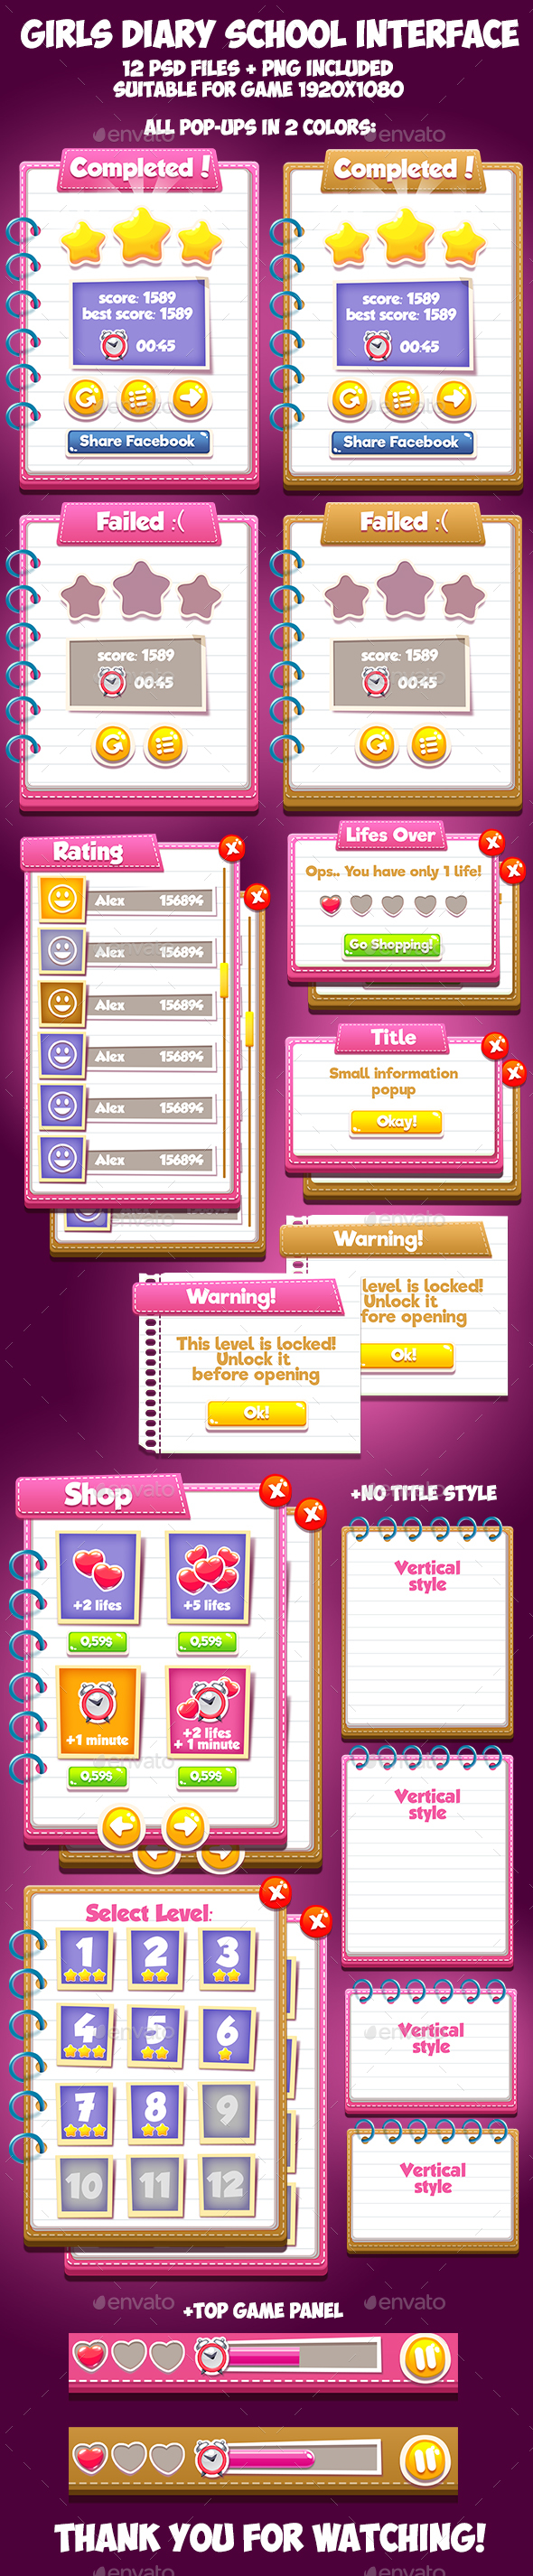 Girls Diary School GUI (User Interfaces)